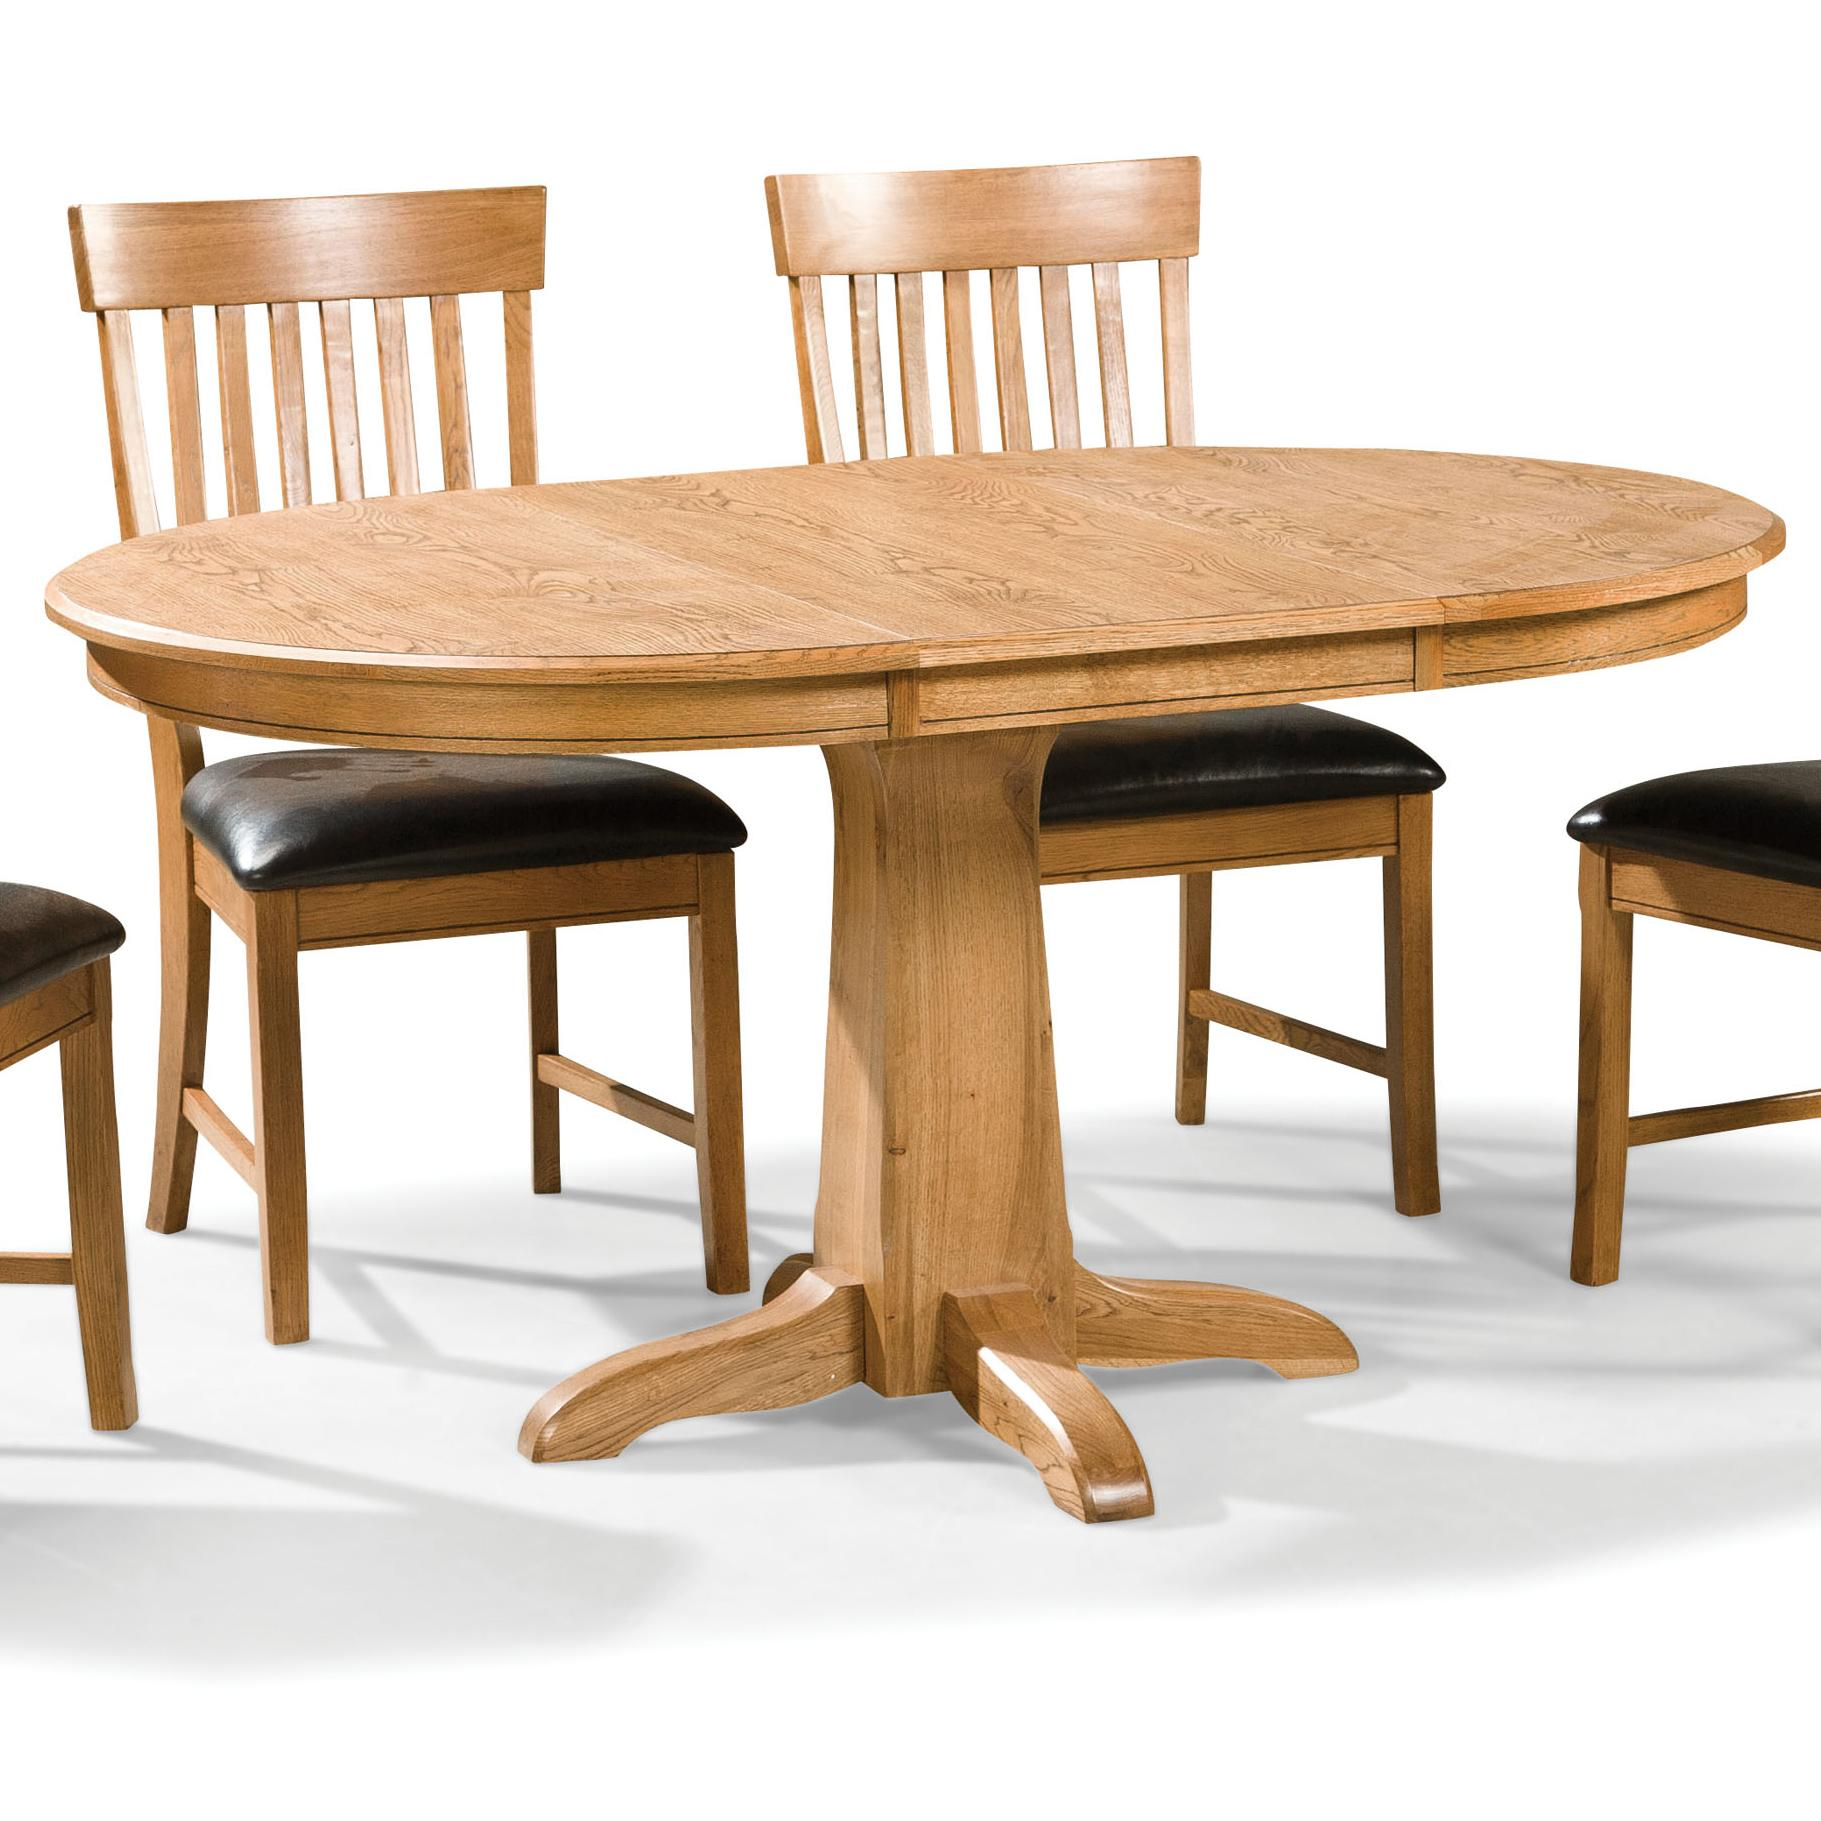 Family Dining Round Dining Table by Intercon at Dinette Depot